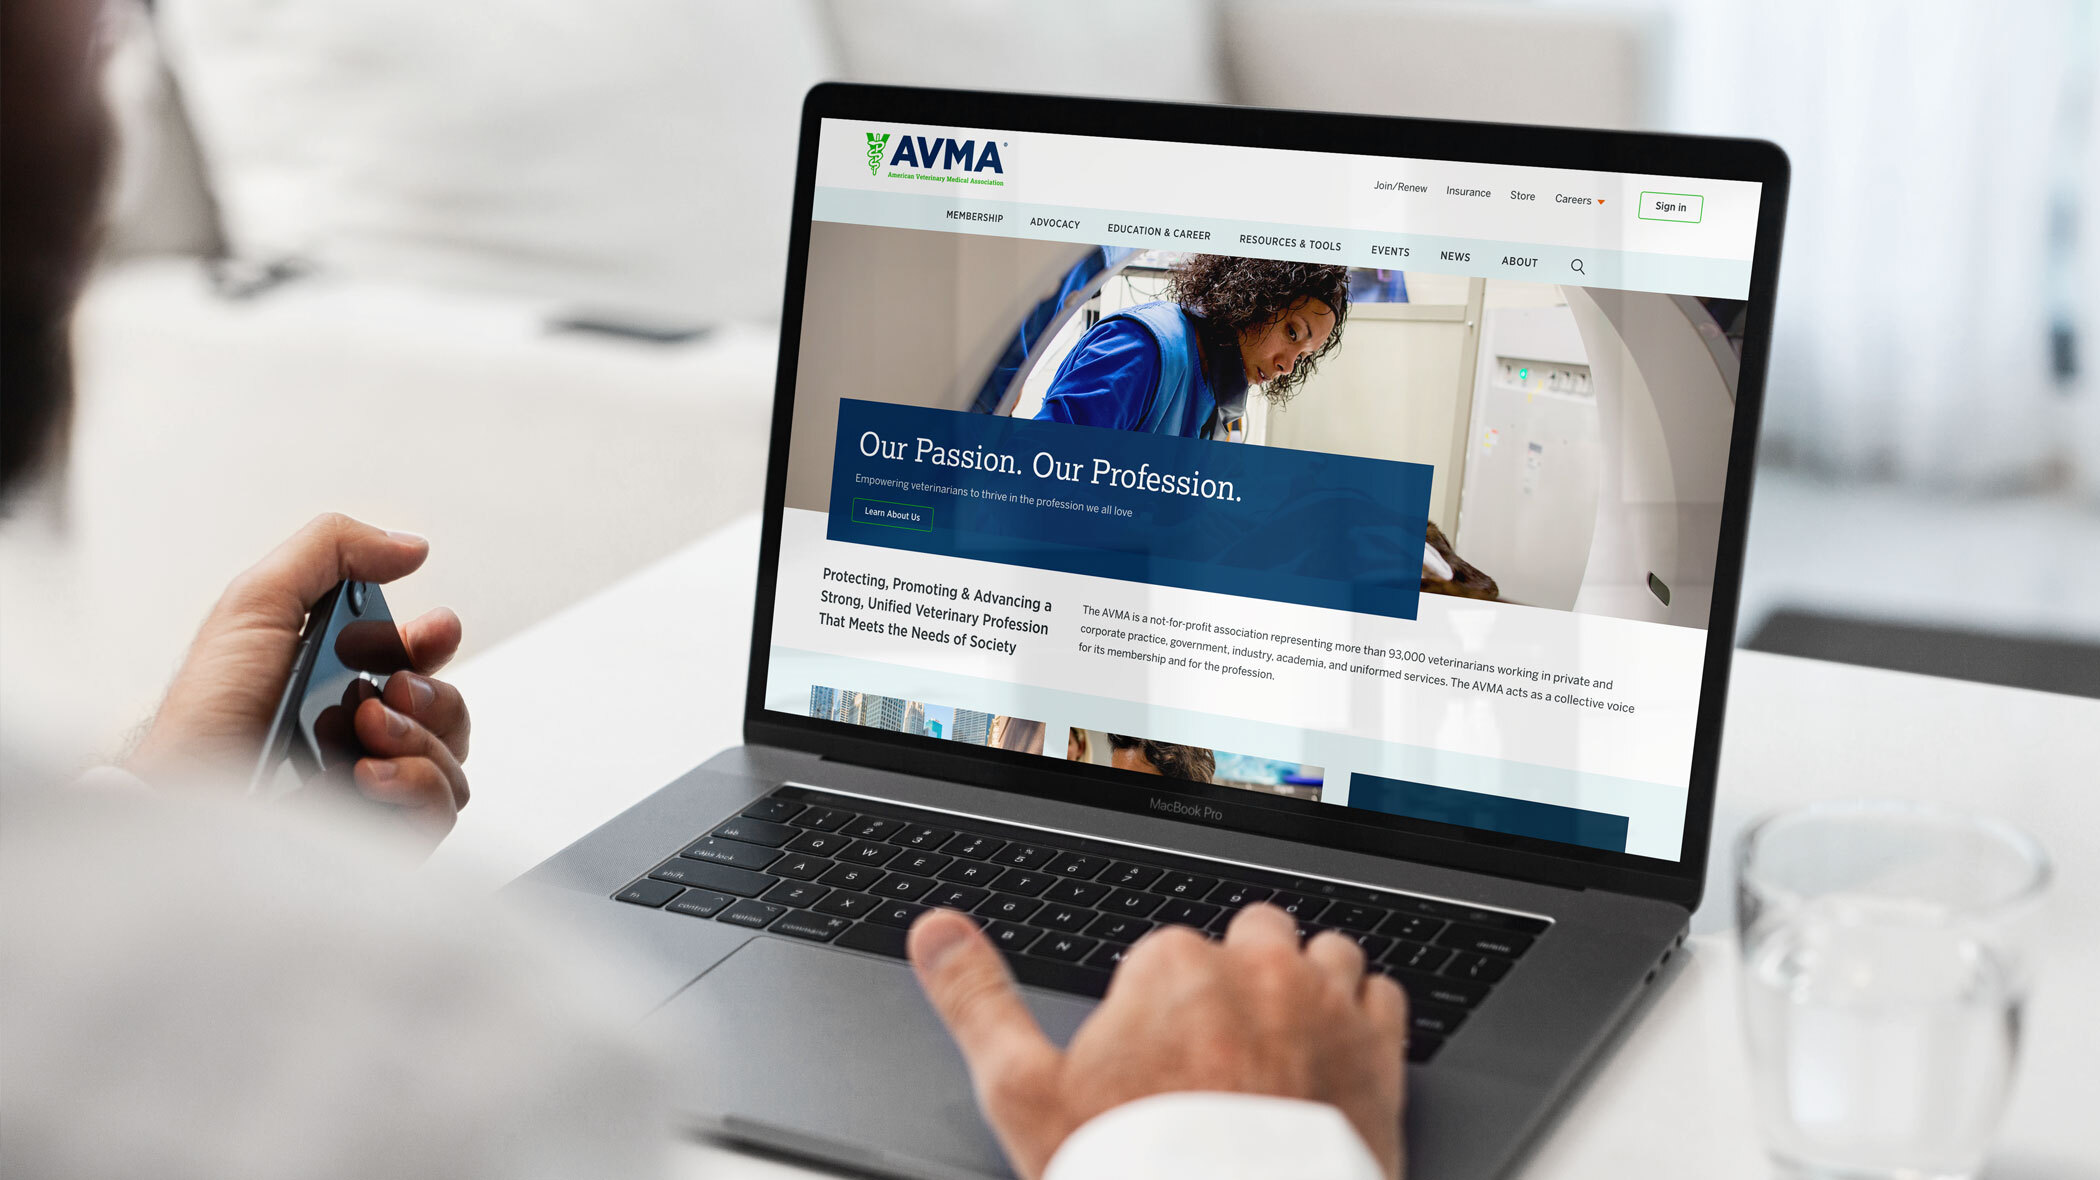 A doctor in a clinical setting viewing the AVMA website on a laptop